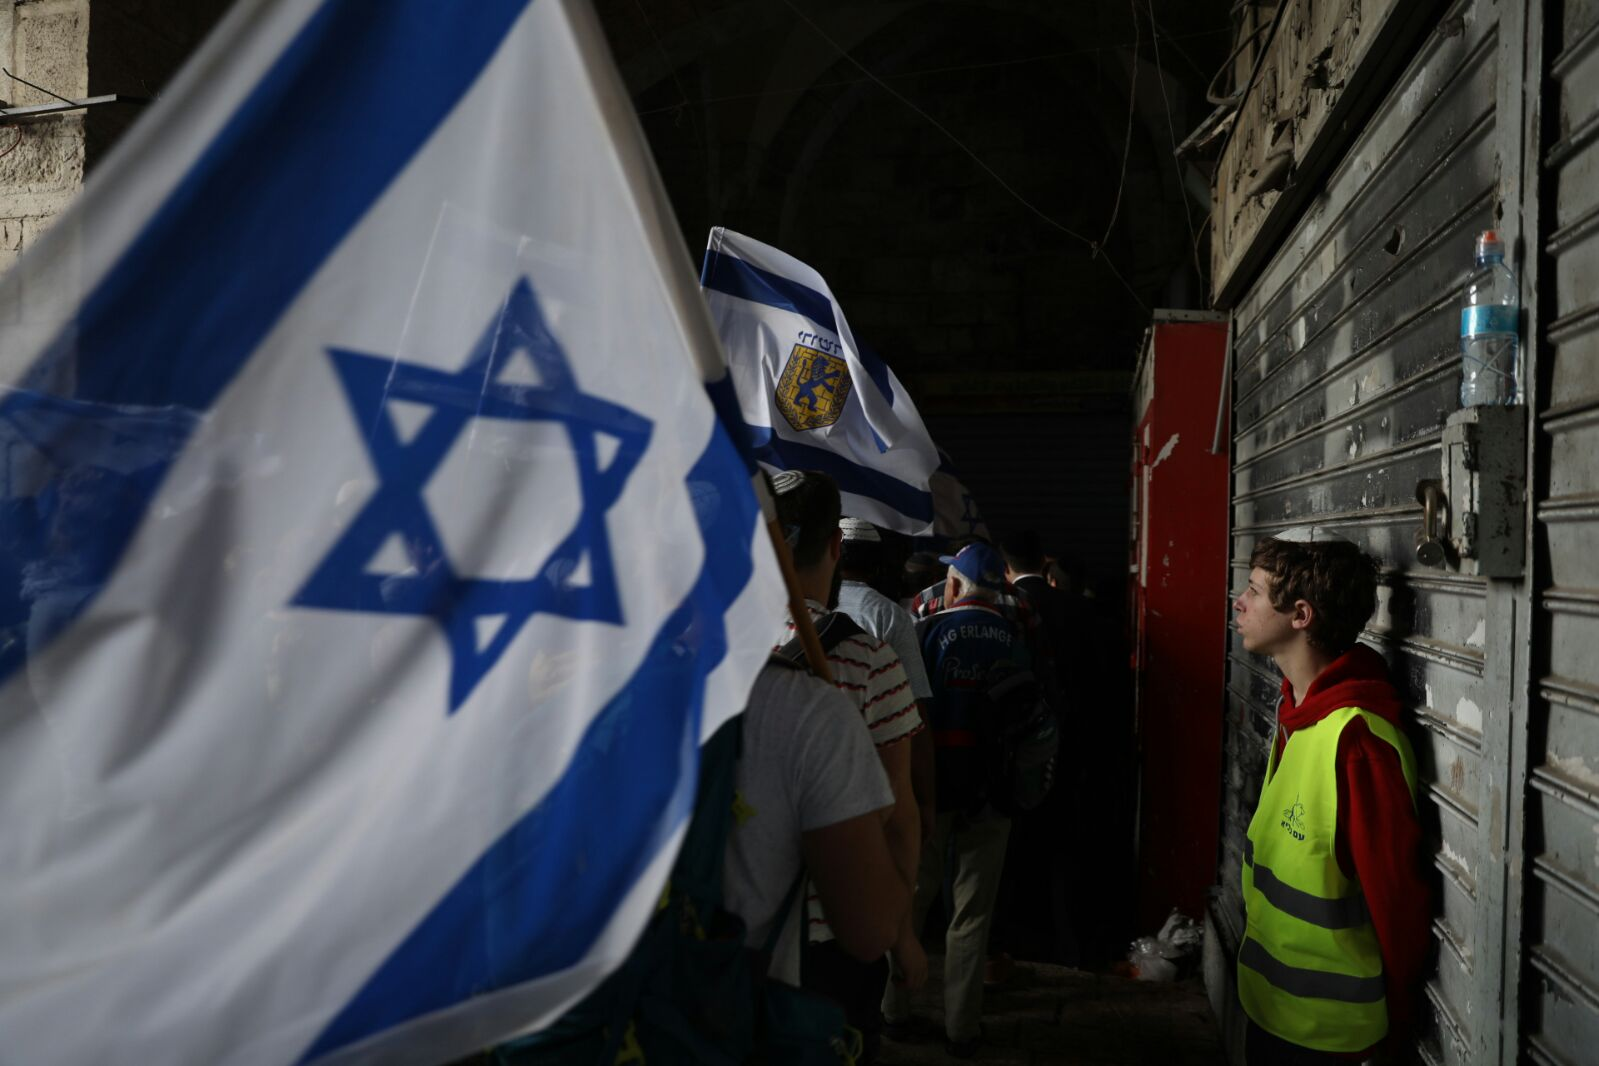 Israeli nationalists march through the Muslim Quarter of Jerusalem's Old City during the 'March of the Flags,' part of the annual Jerusalem Day celebrations, May 13, 2018. (Oren Ziv/Activestills.org)